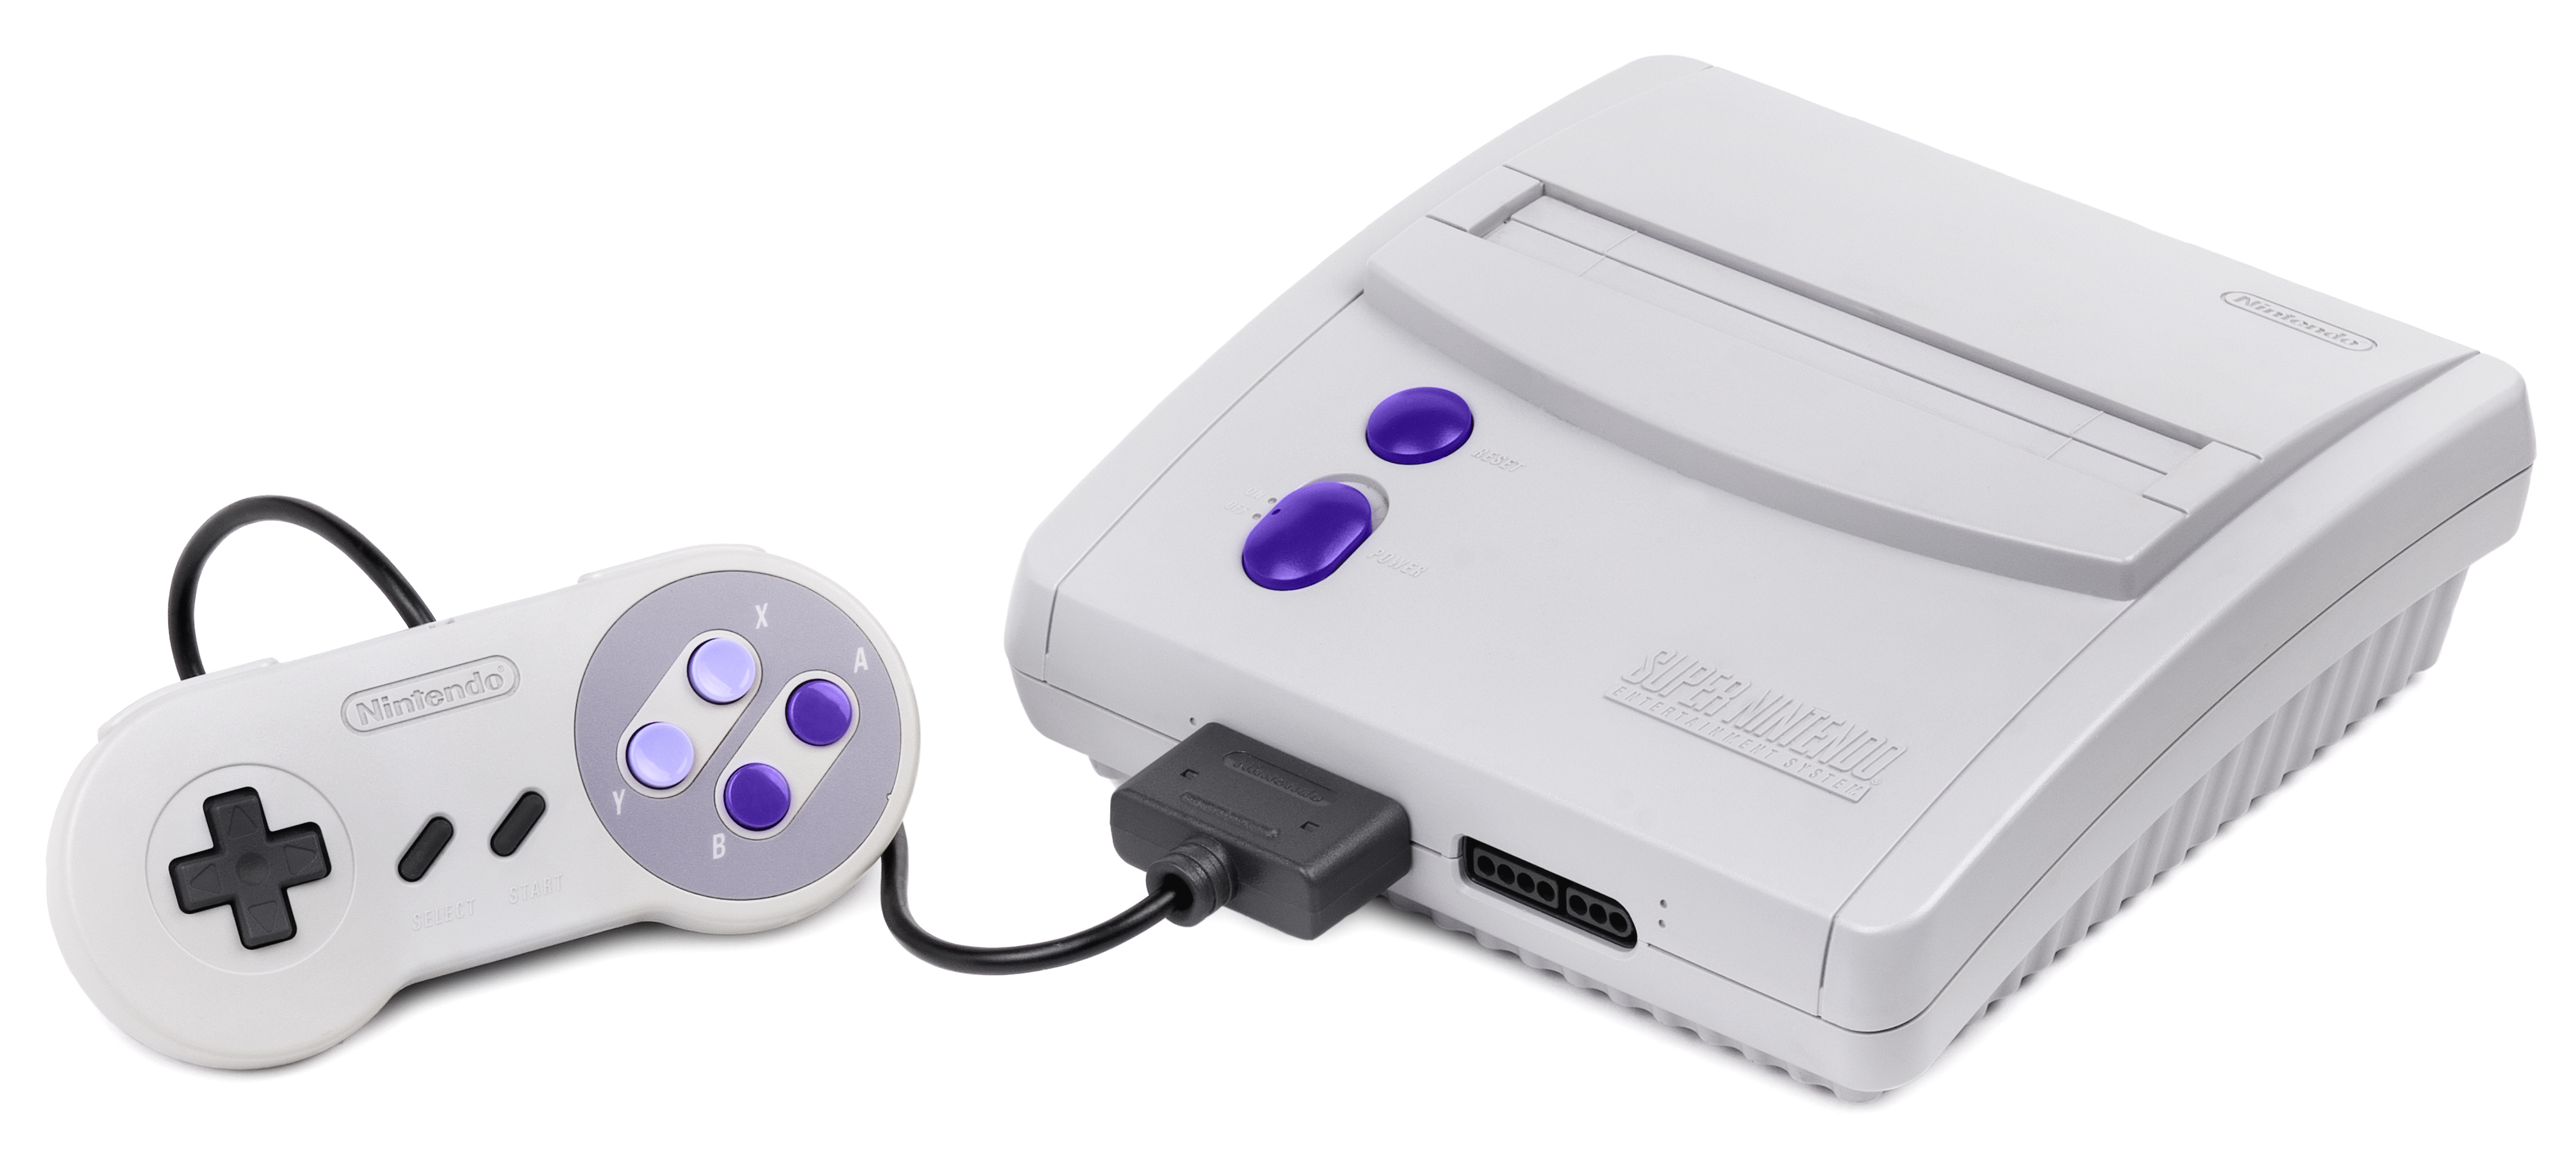 Rumor: The SNES Mini is on the way, hopefully they make more than 10 screenshot